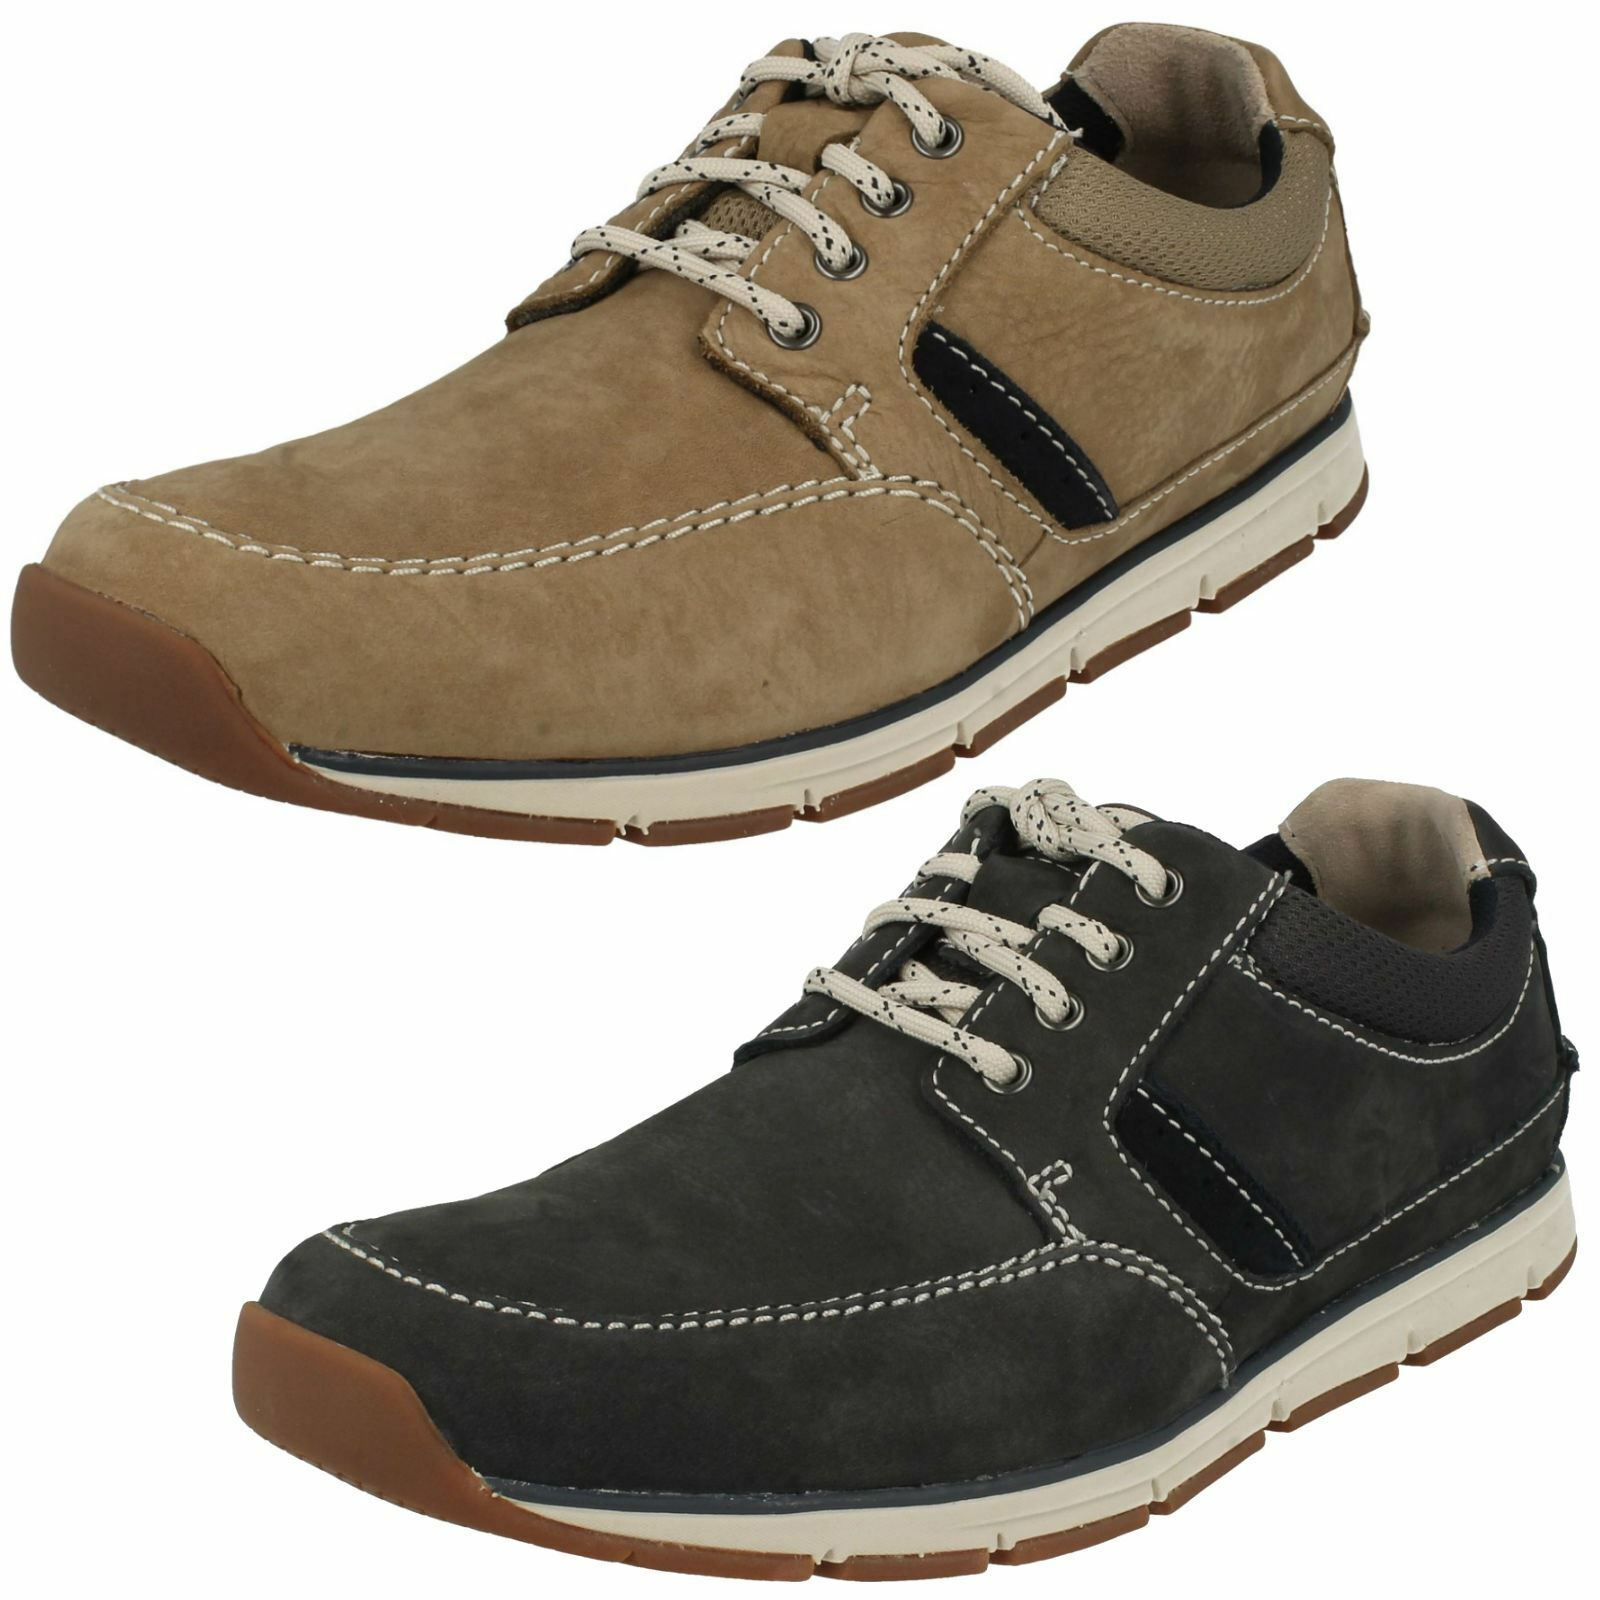 Mens Clarks Beachmont Edge Taupe Or Navy Nubuck Leather Casual Lace Up Shoes